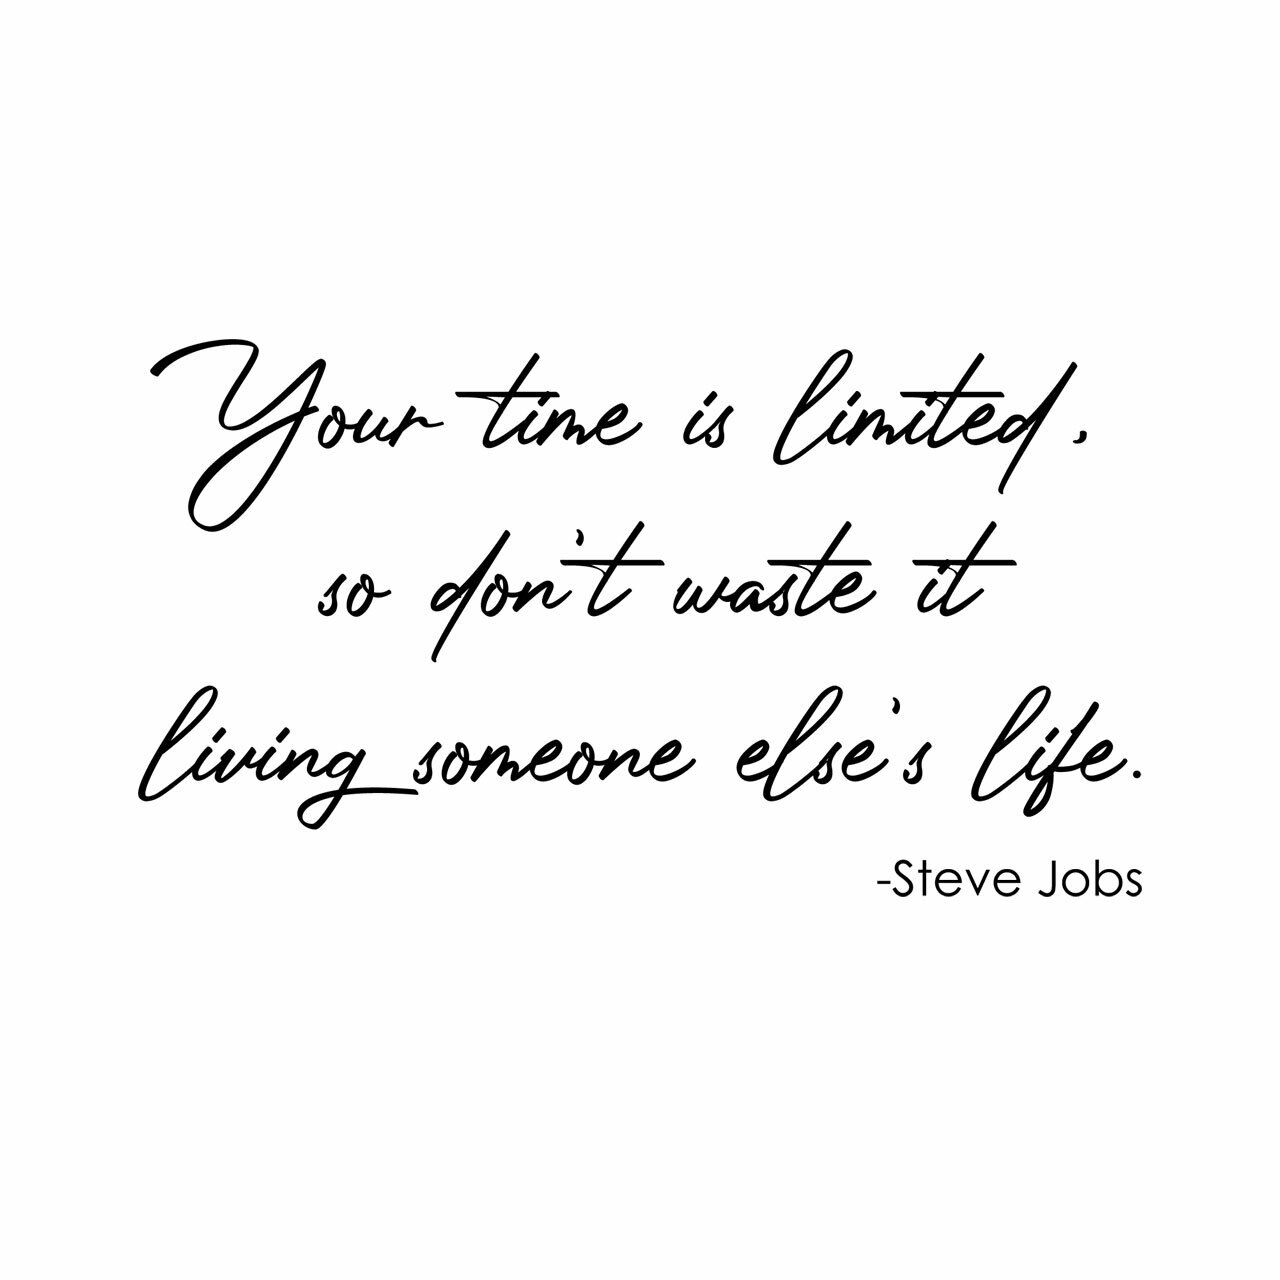 Your time is limited so don't waste it living someone else's life. -Steve Jobs written in a black script font on a white background